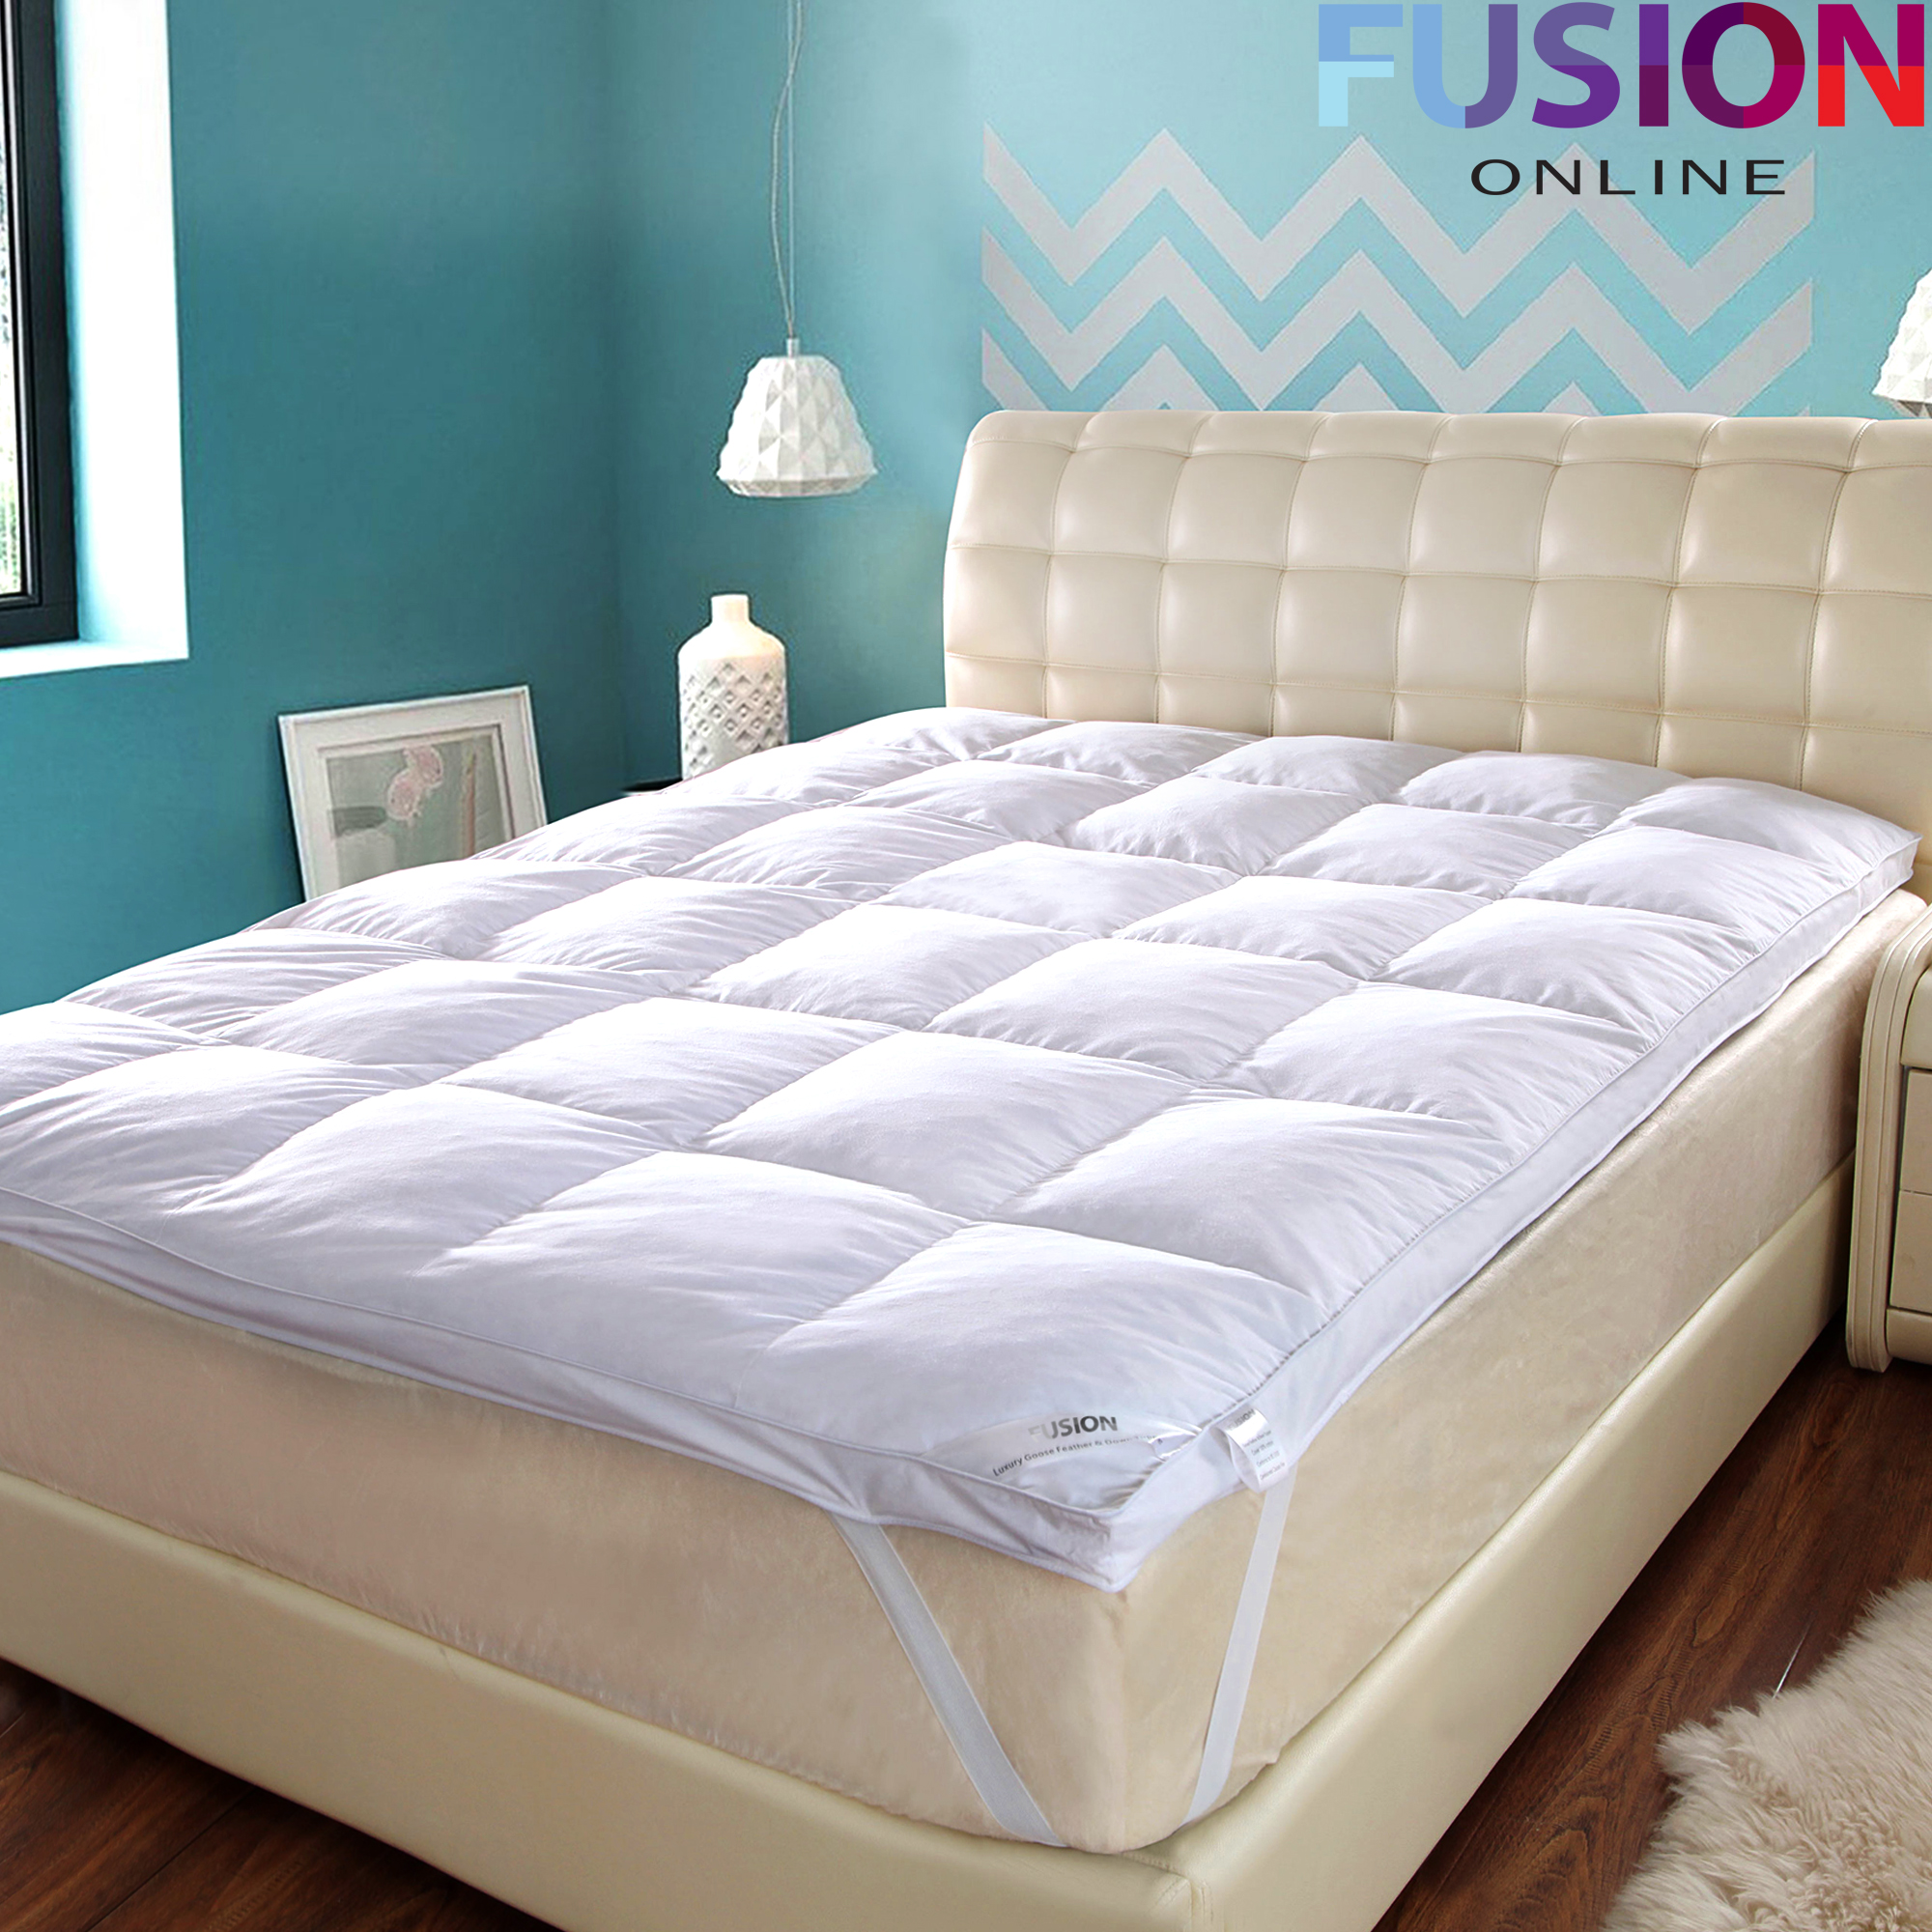 LUXURY GOOSE FEATHER & DOWN MATTRESS TOPPER ELASTICATED